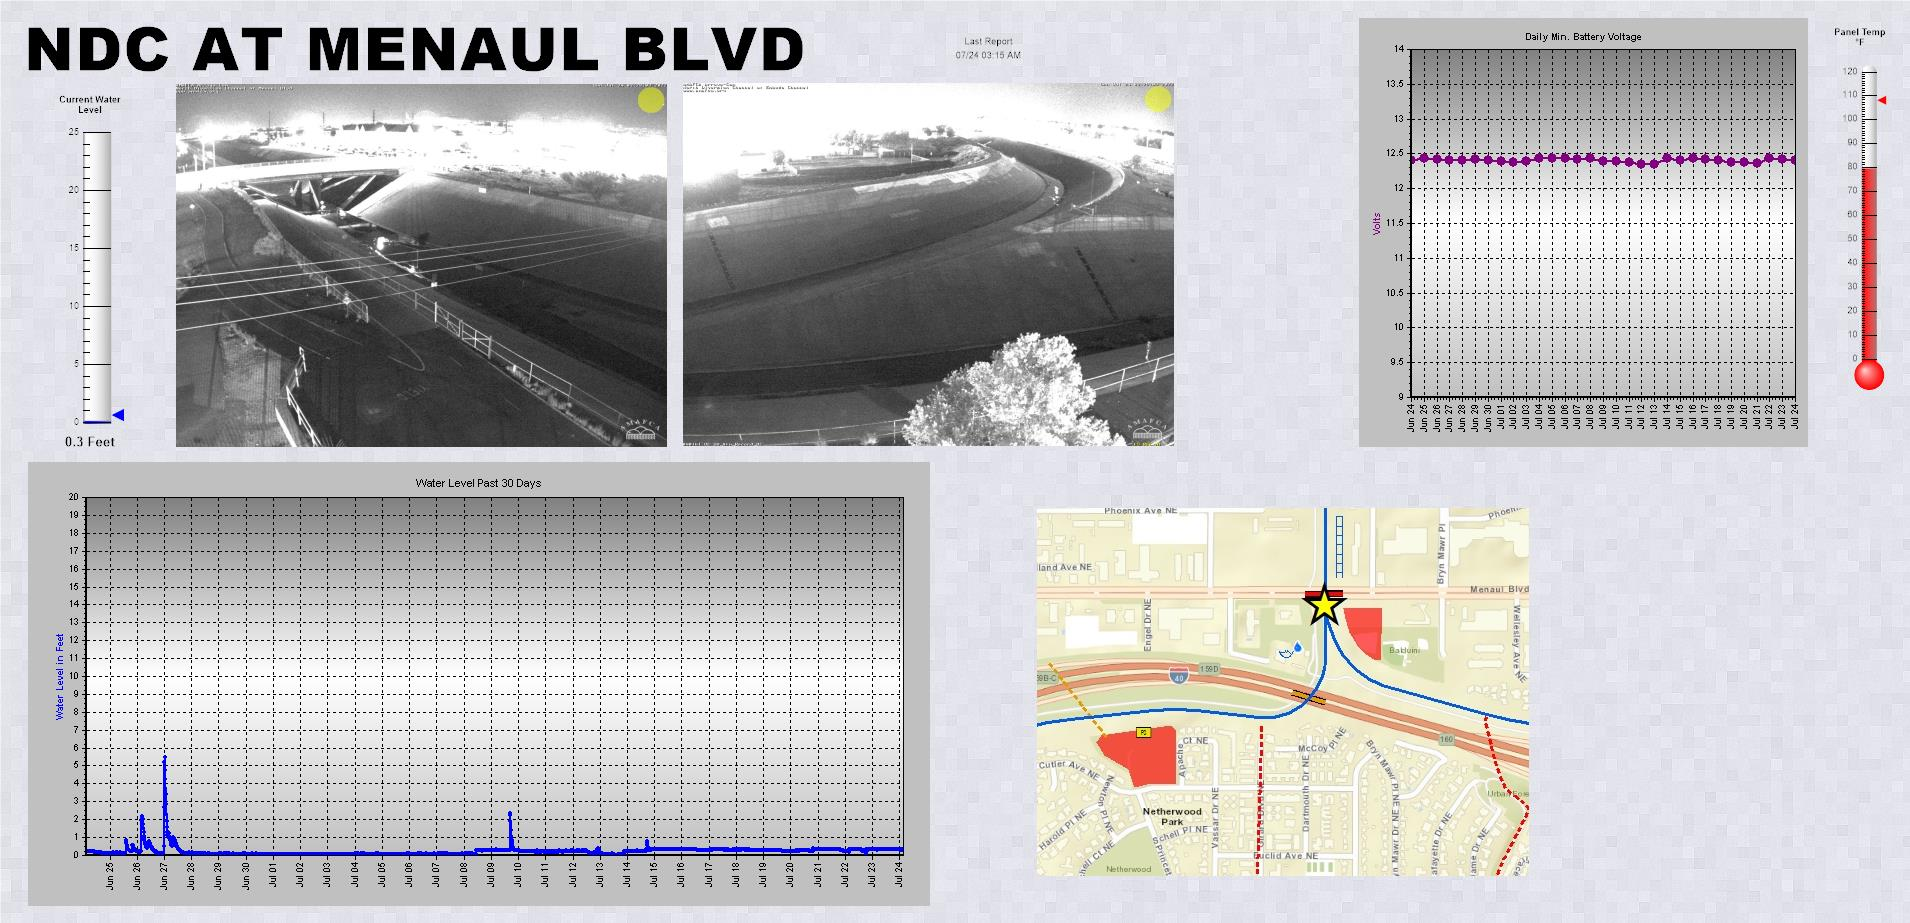 North Diversion Channel at Menaul telemetry data